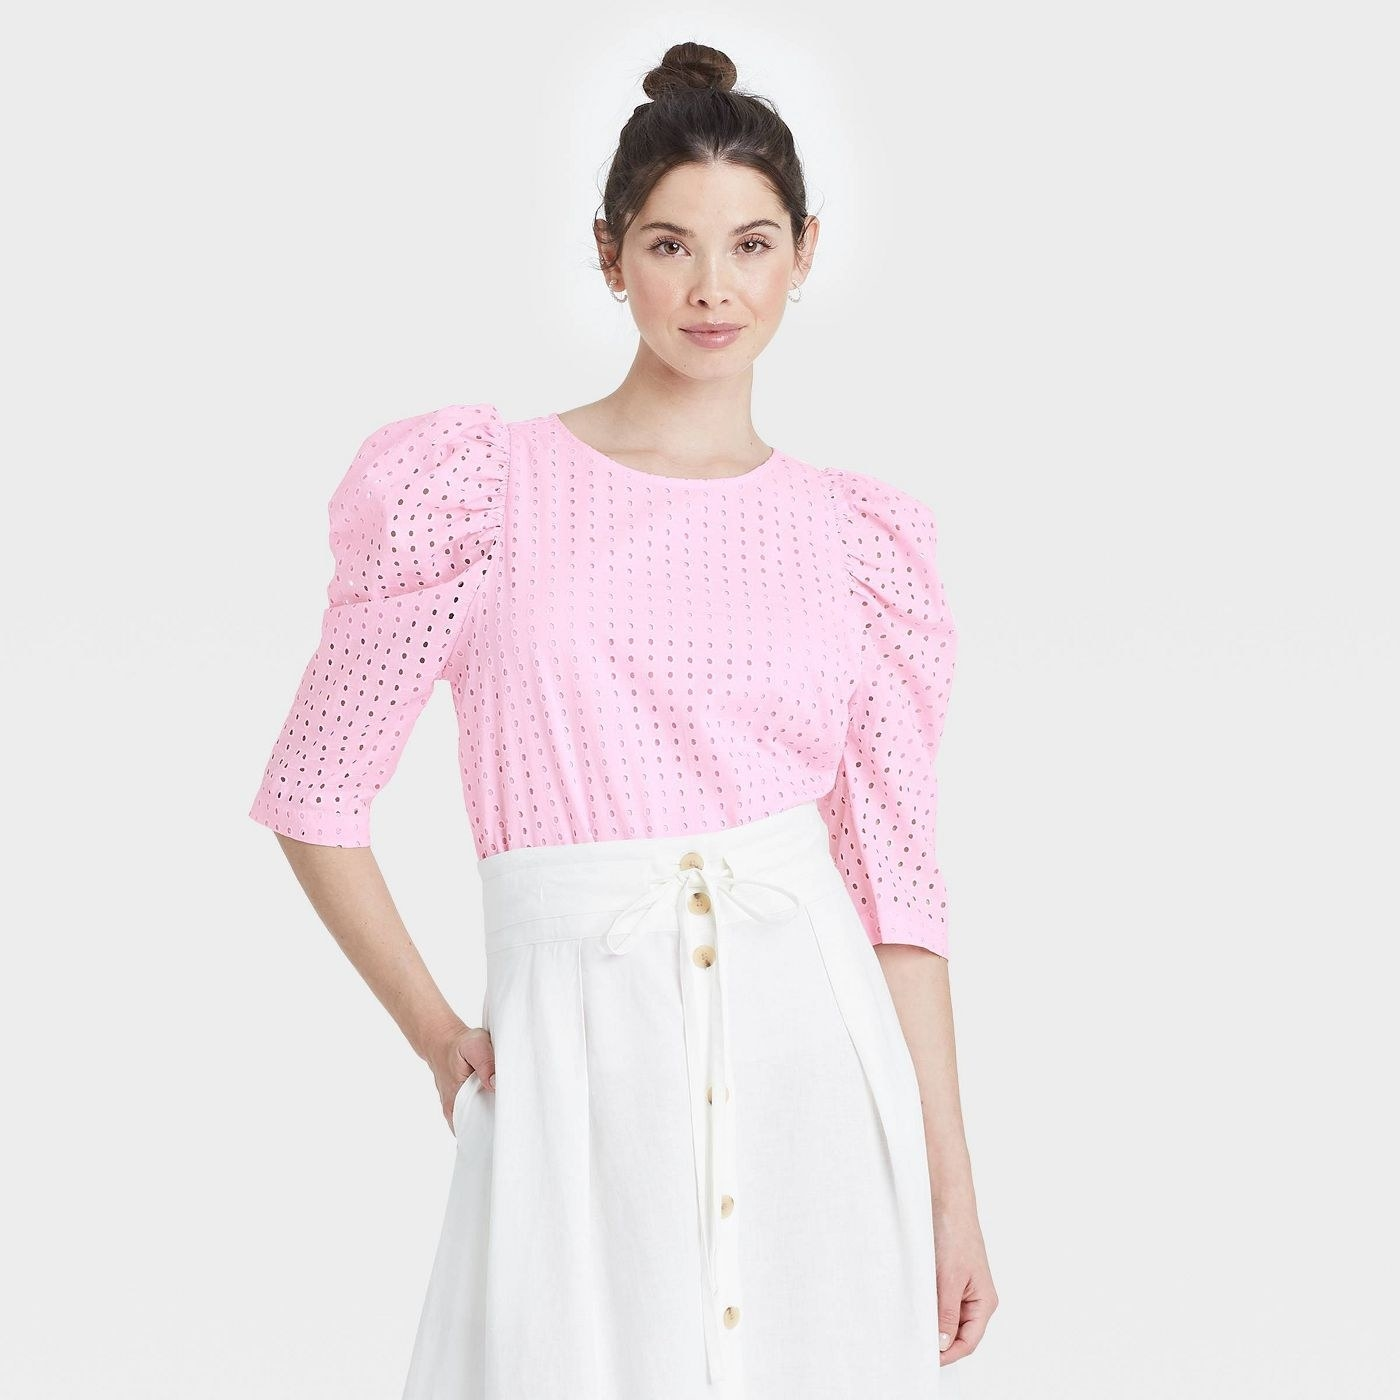 Model wearing pink top with 3/4 sleeves